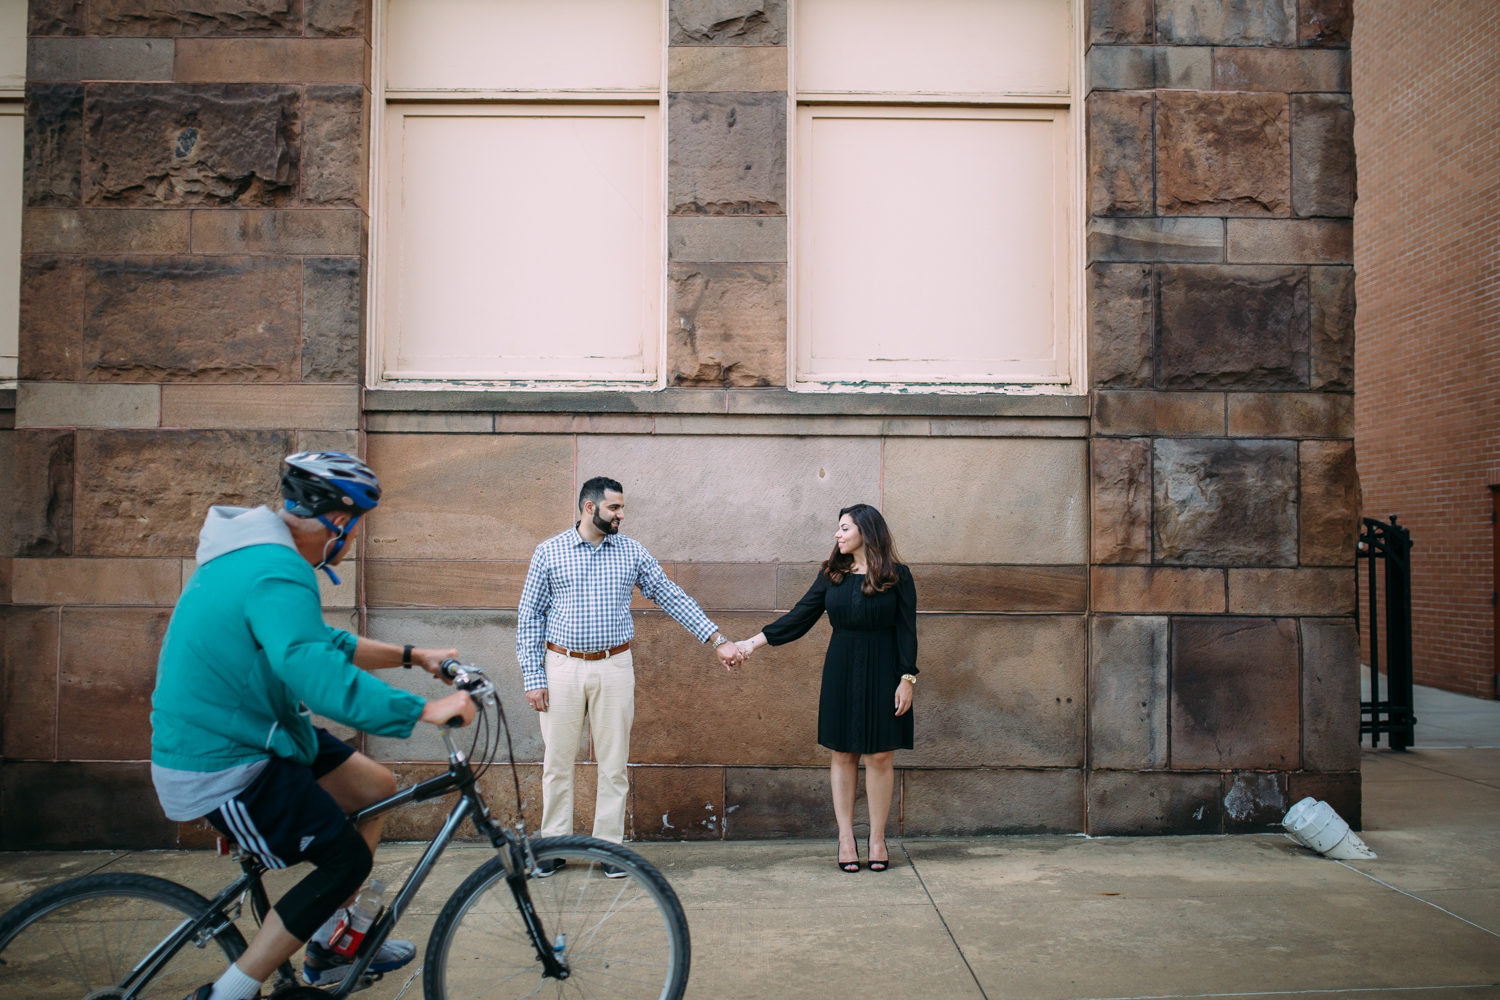 Ashley-reed-photography-pittsburgh-engagement-engagementphotography-engagementphotographer-stationsquare-statio-square-pittsburghengagementphotography-20.jpg